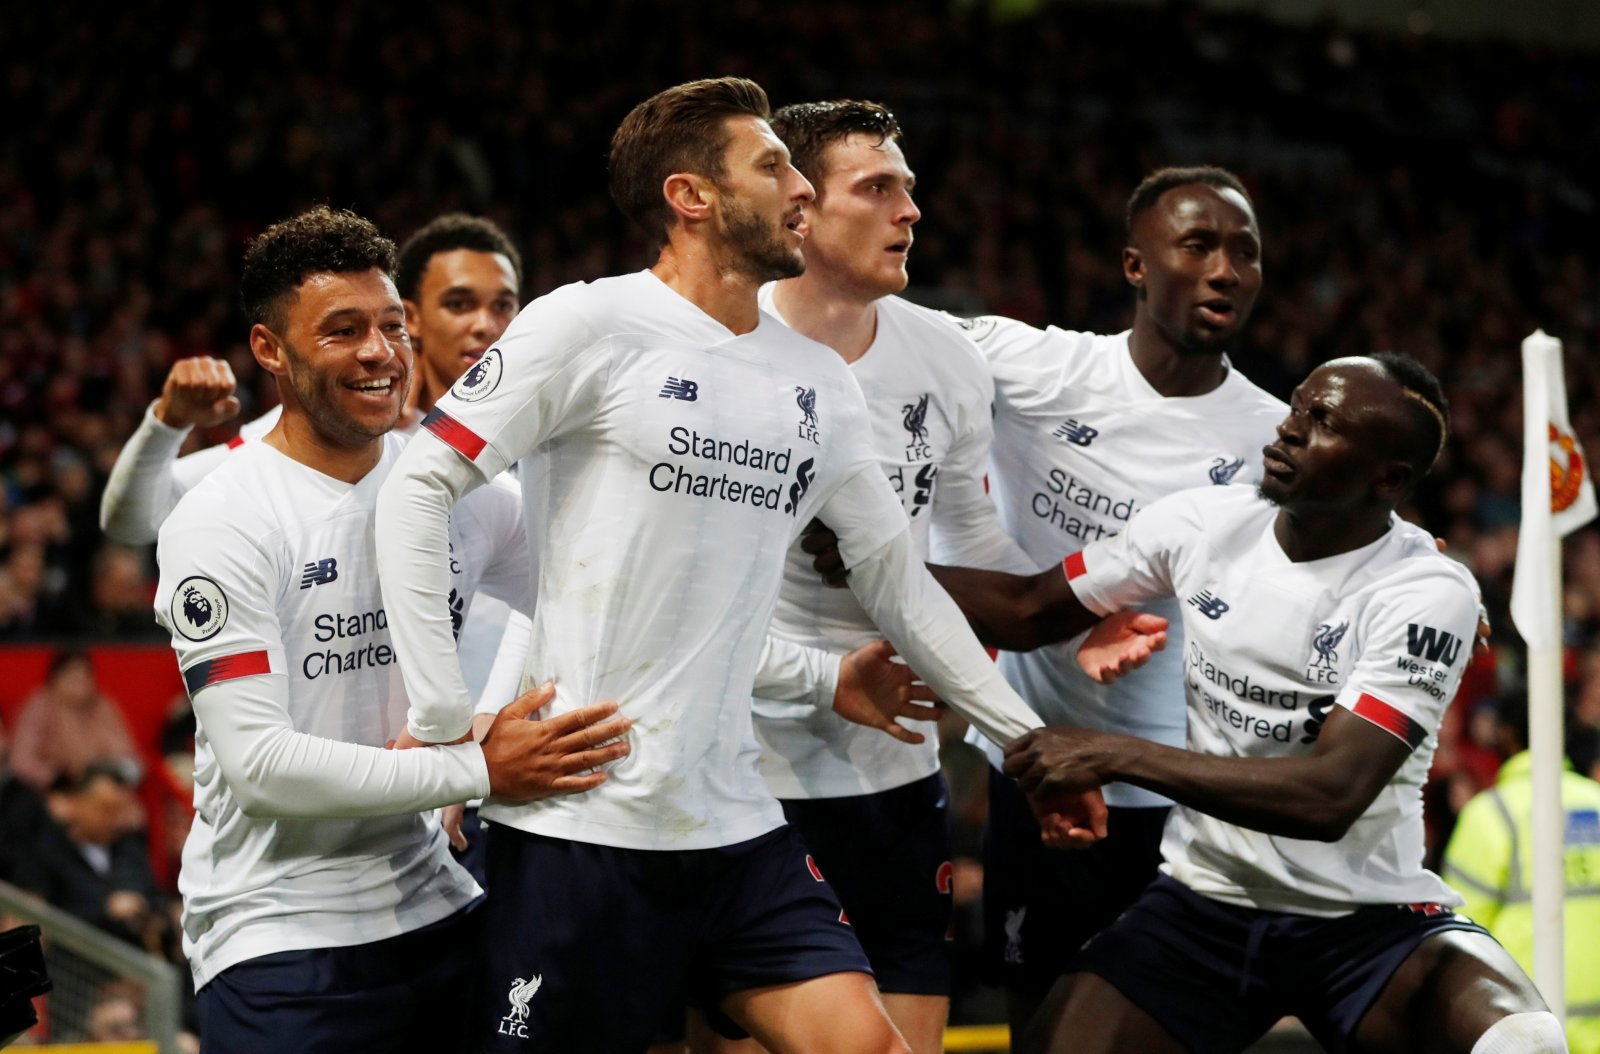 Liverpool: Fans react to Adam Lallana scoring against Manchester United